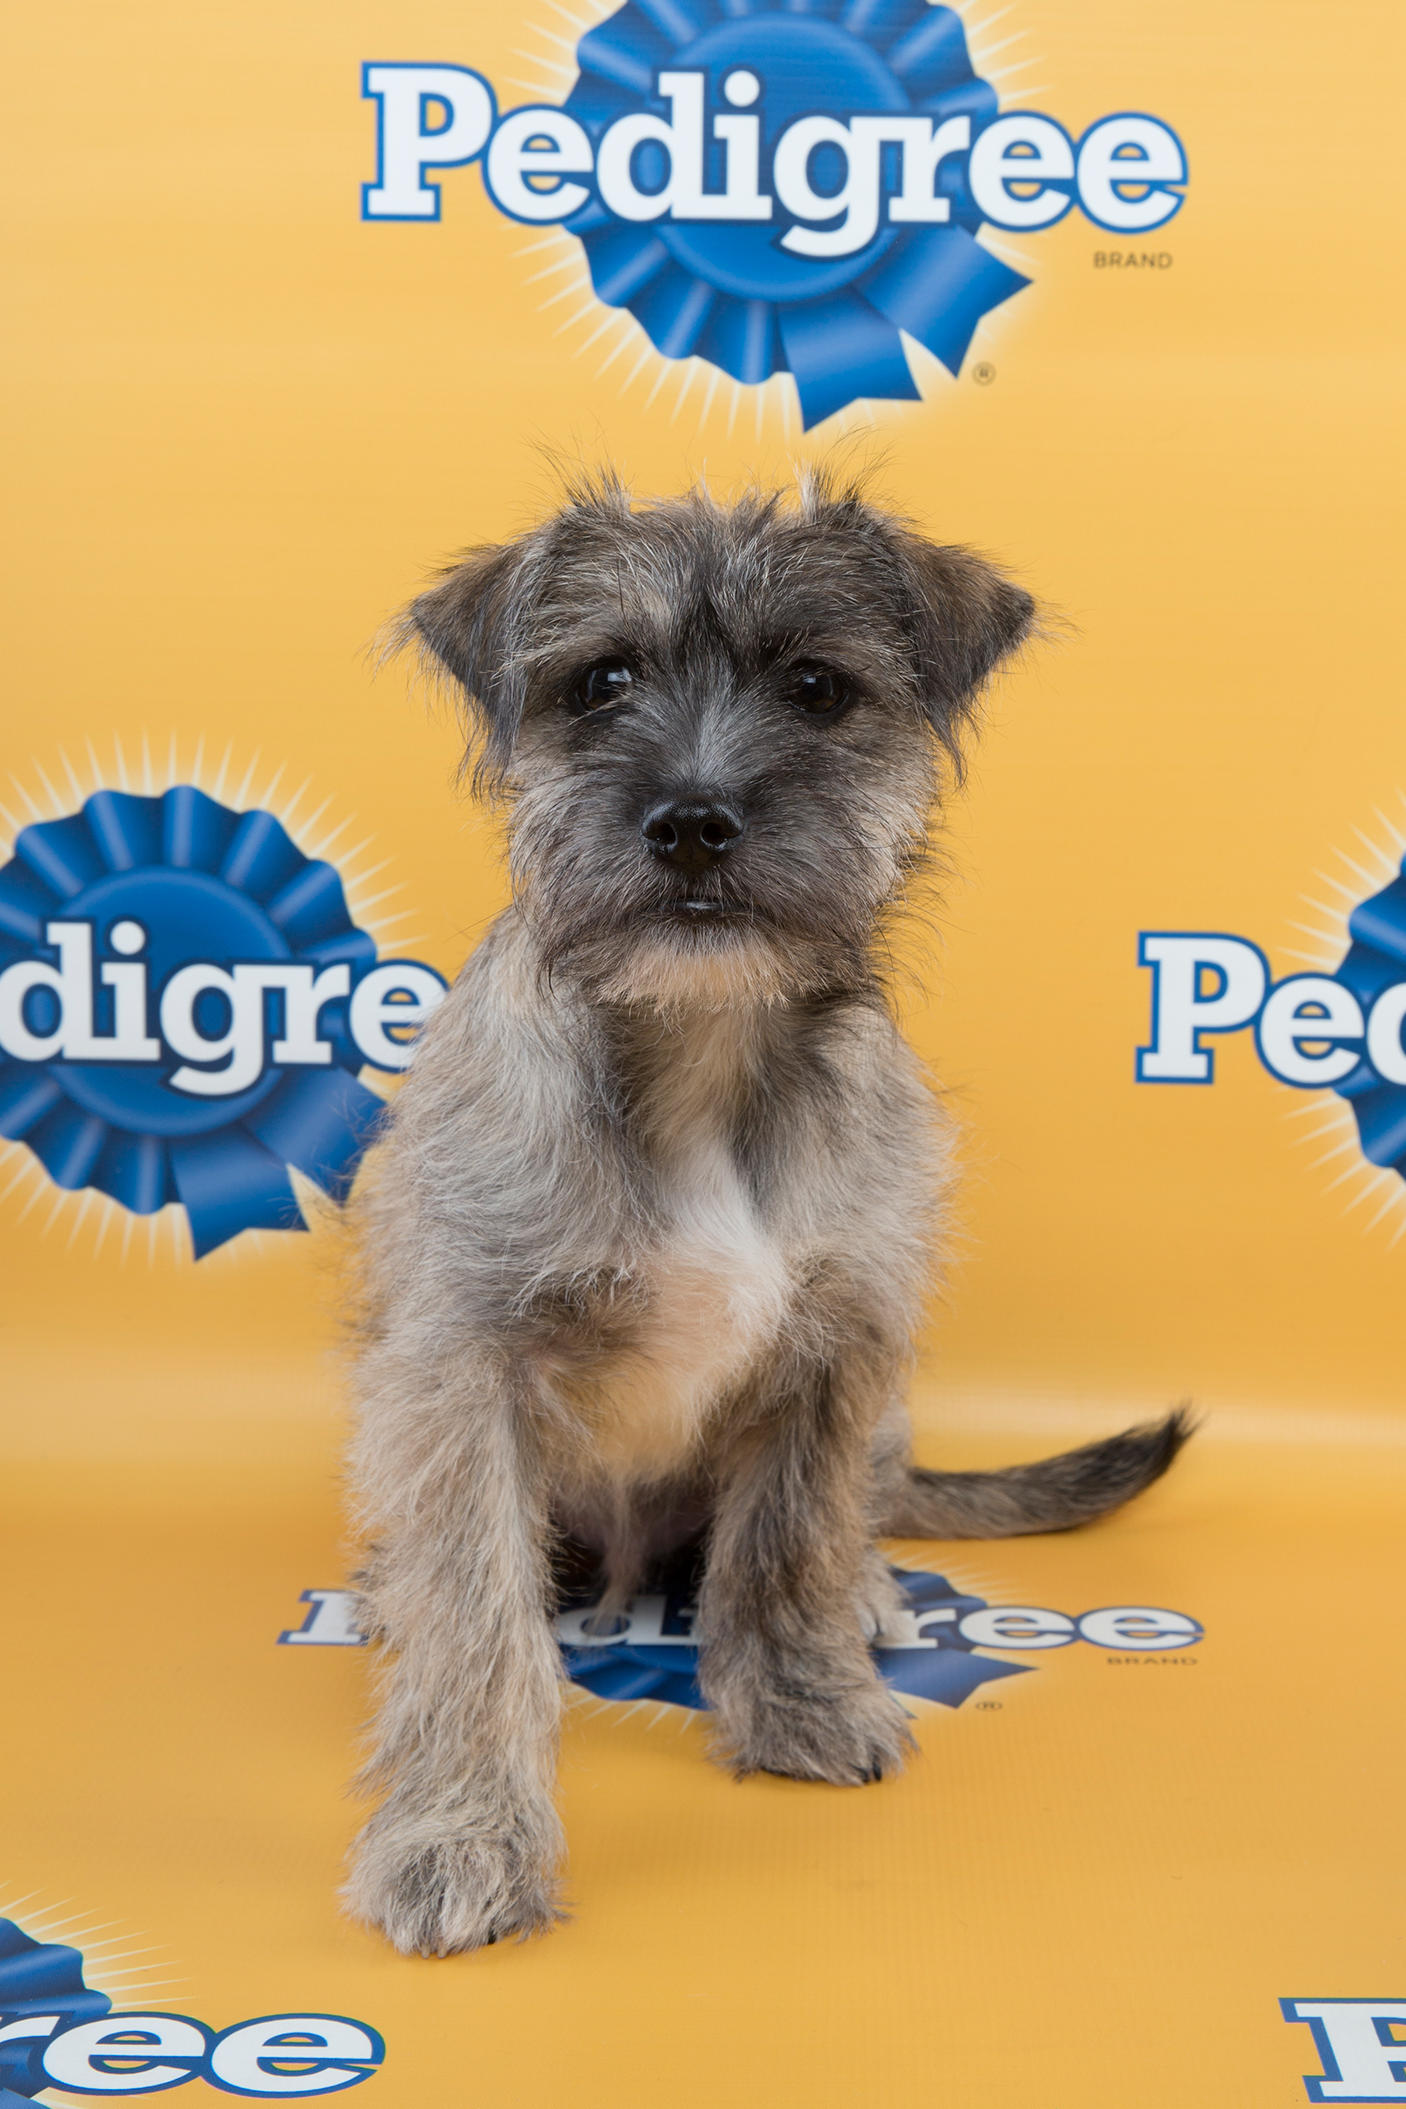 Oscar marcus Puppy Bowl 11, puppy bowl xi, puppy bowl, starting lineup, lineup, puppy, puppies